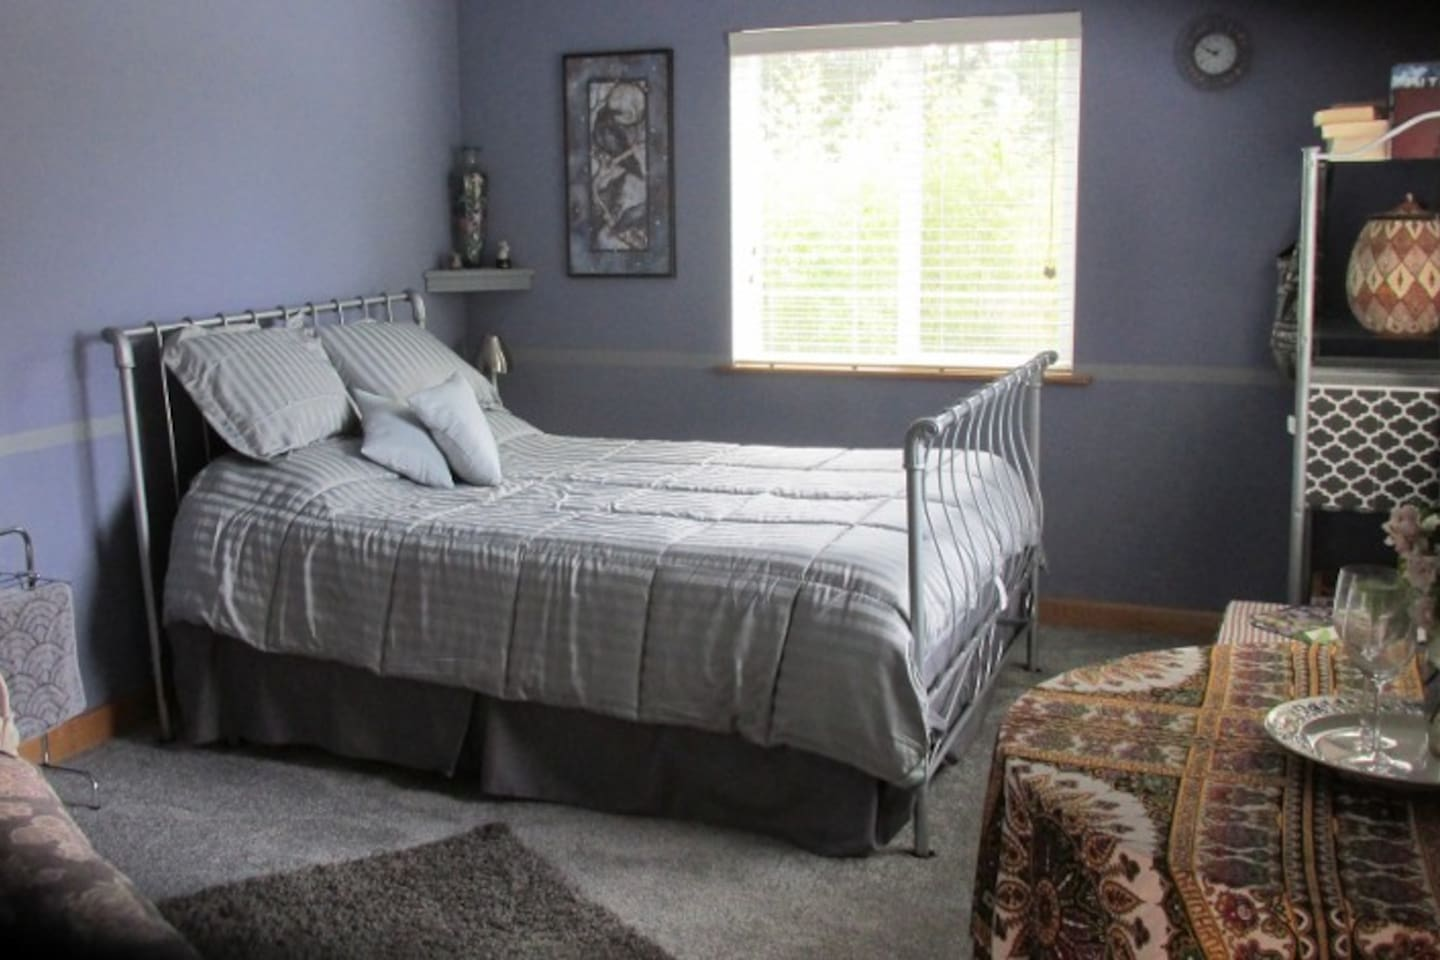 Spacious room has queen-sized bed with new gel memory foam mattress